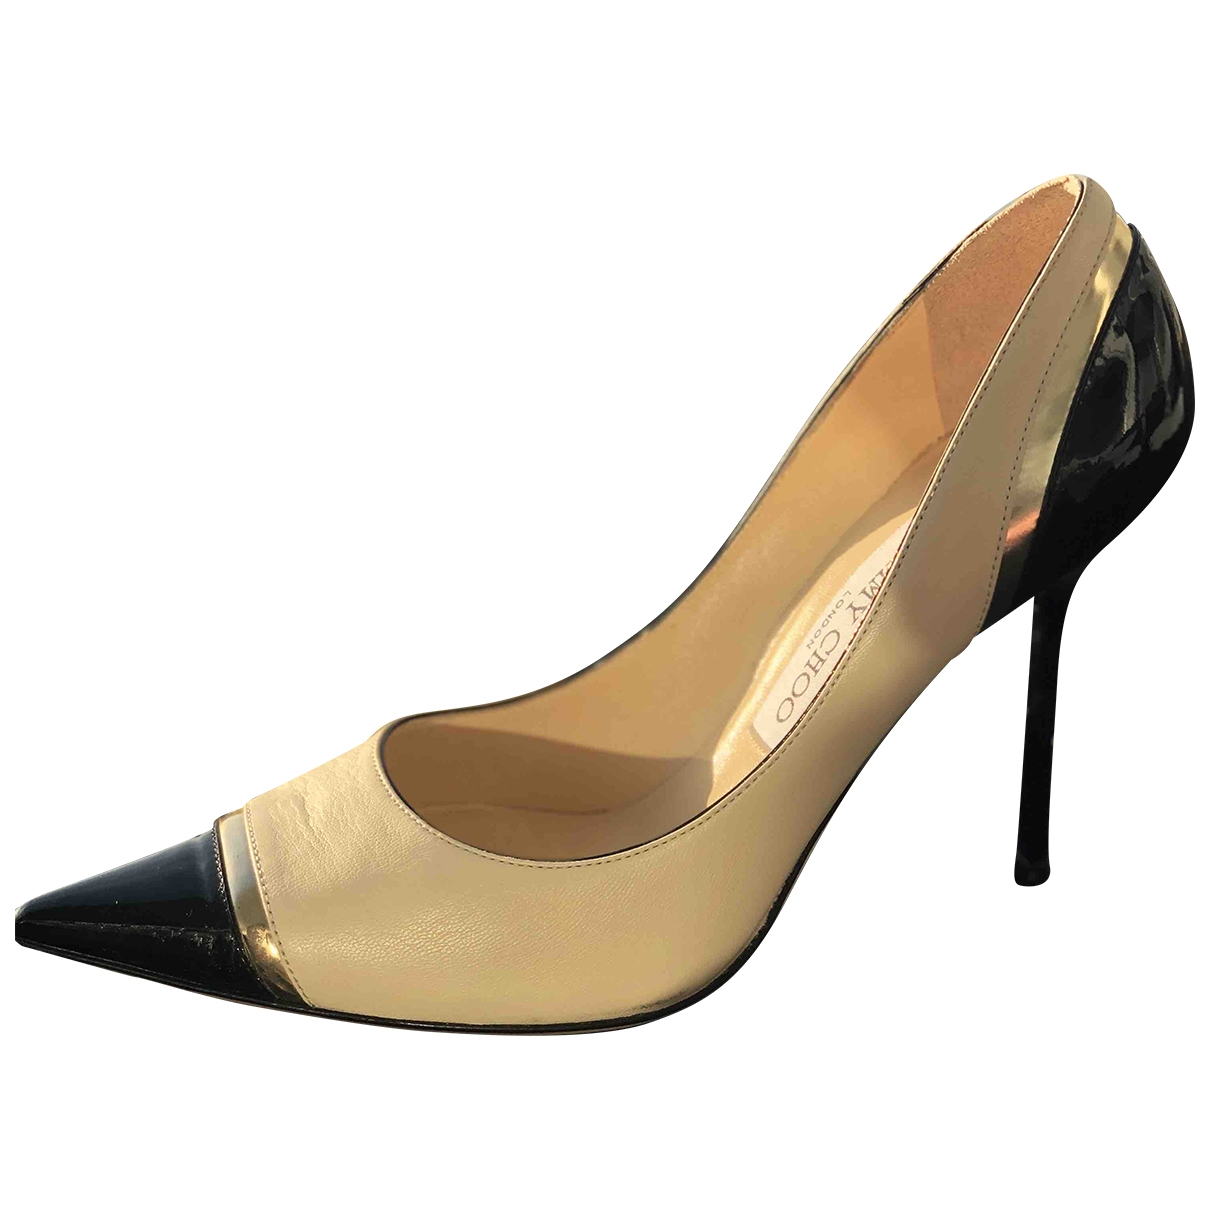 Jimmy Choo \N Beige Leather Heels for Women 37.5 EU